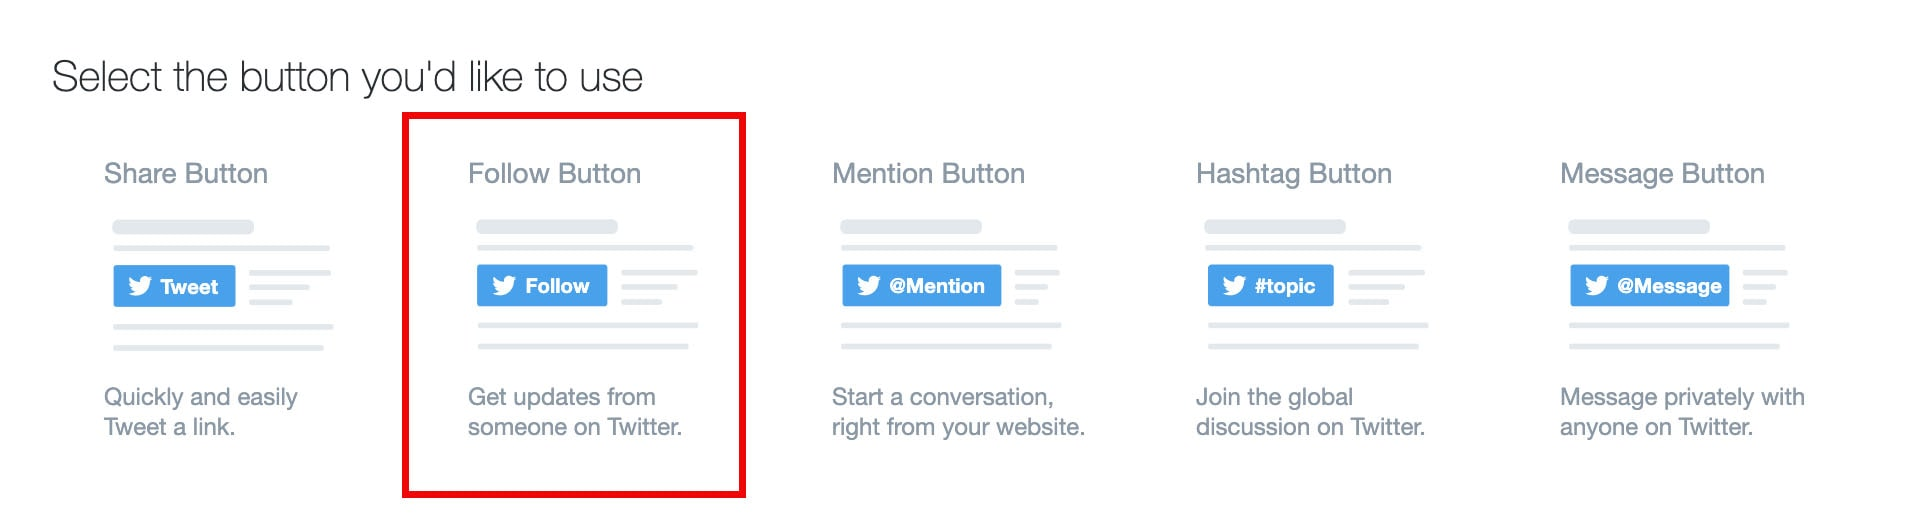 twitter buttons option on twitter's developer page